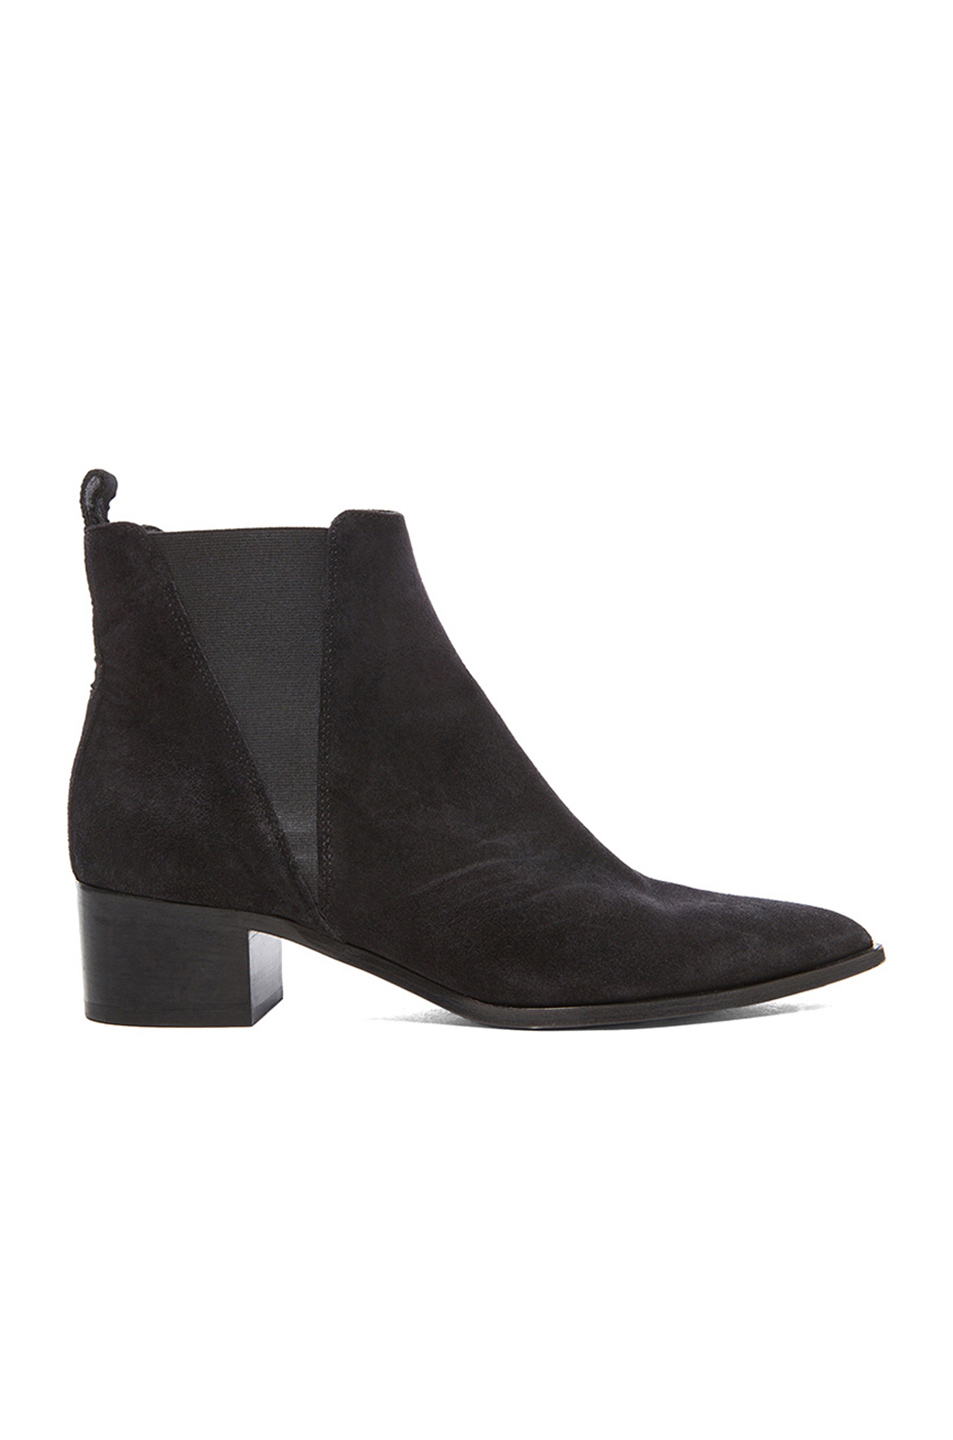 ACNE STUDIOS Jensen Pointy-Toe Ankle Boot, Black at FORWARD